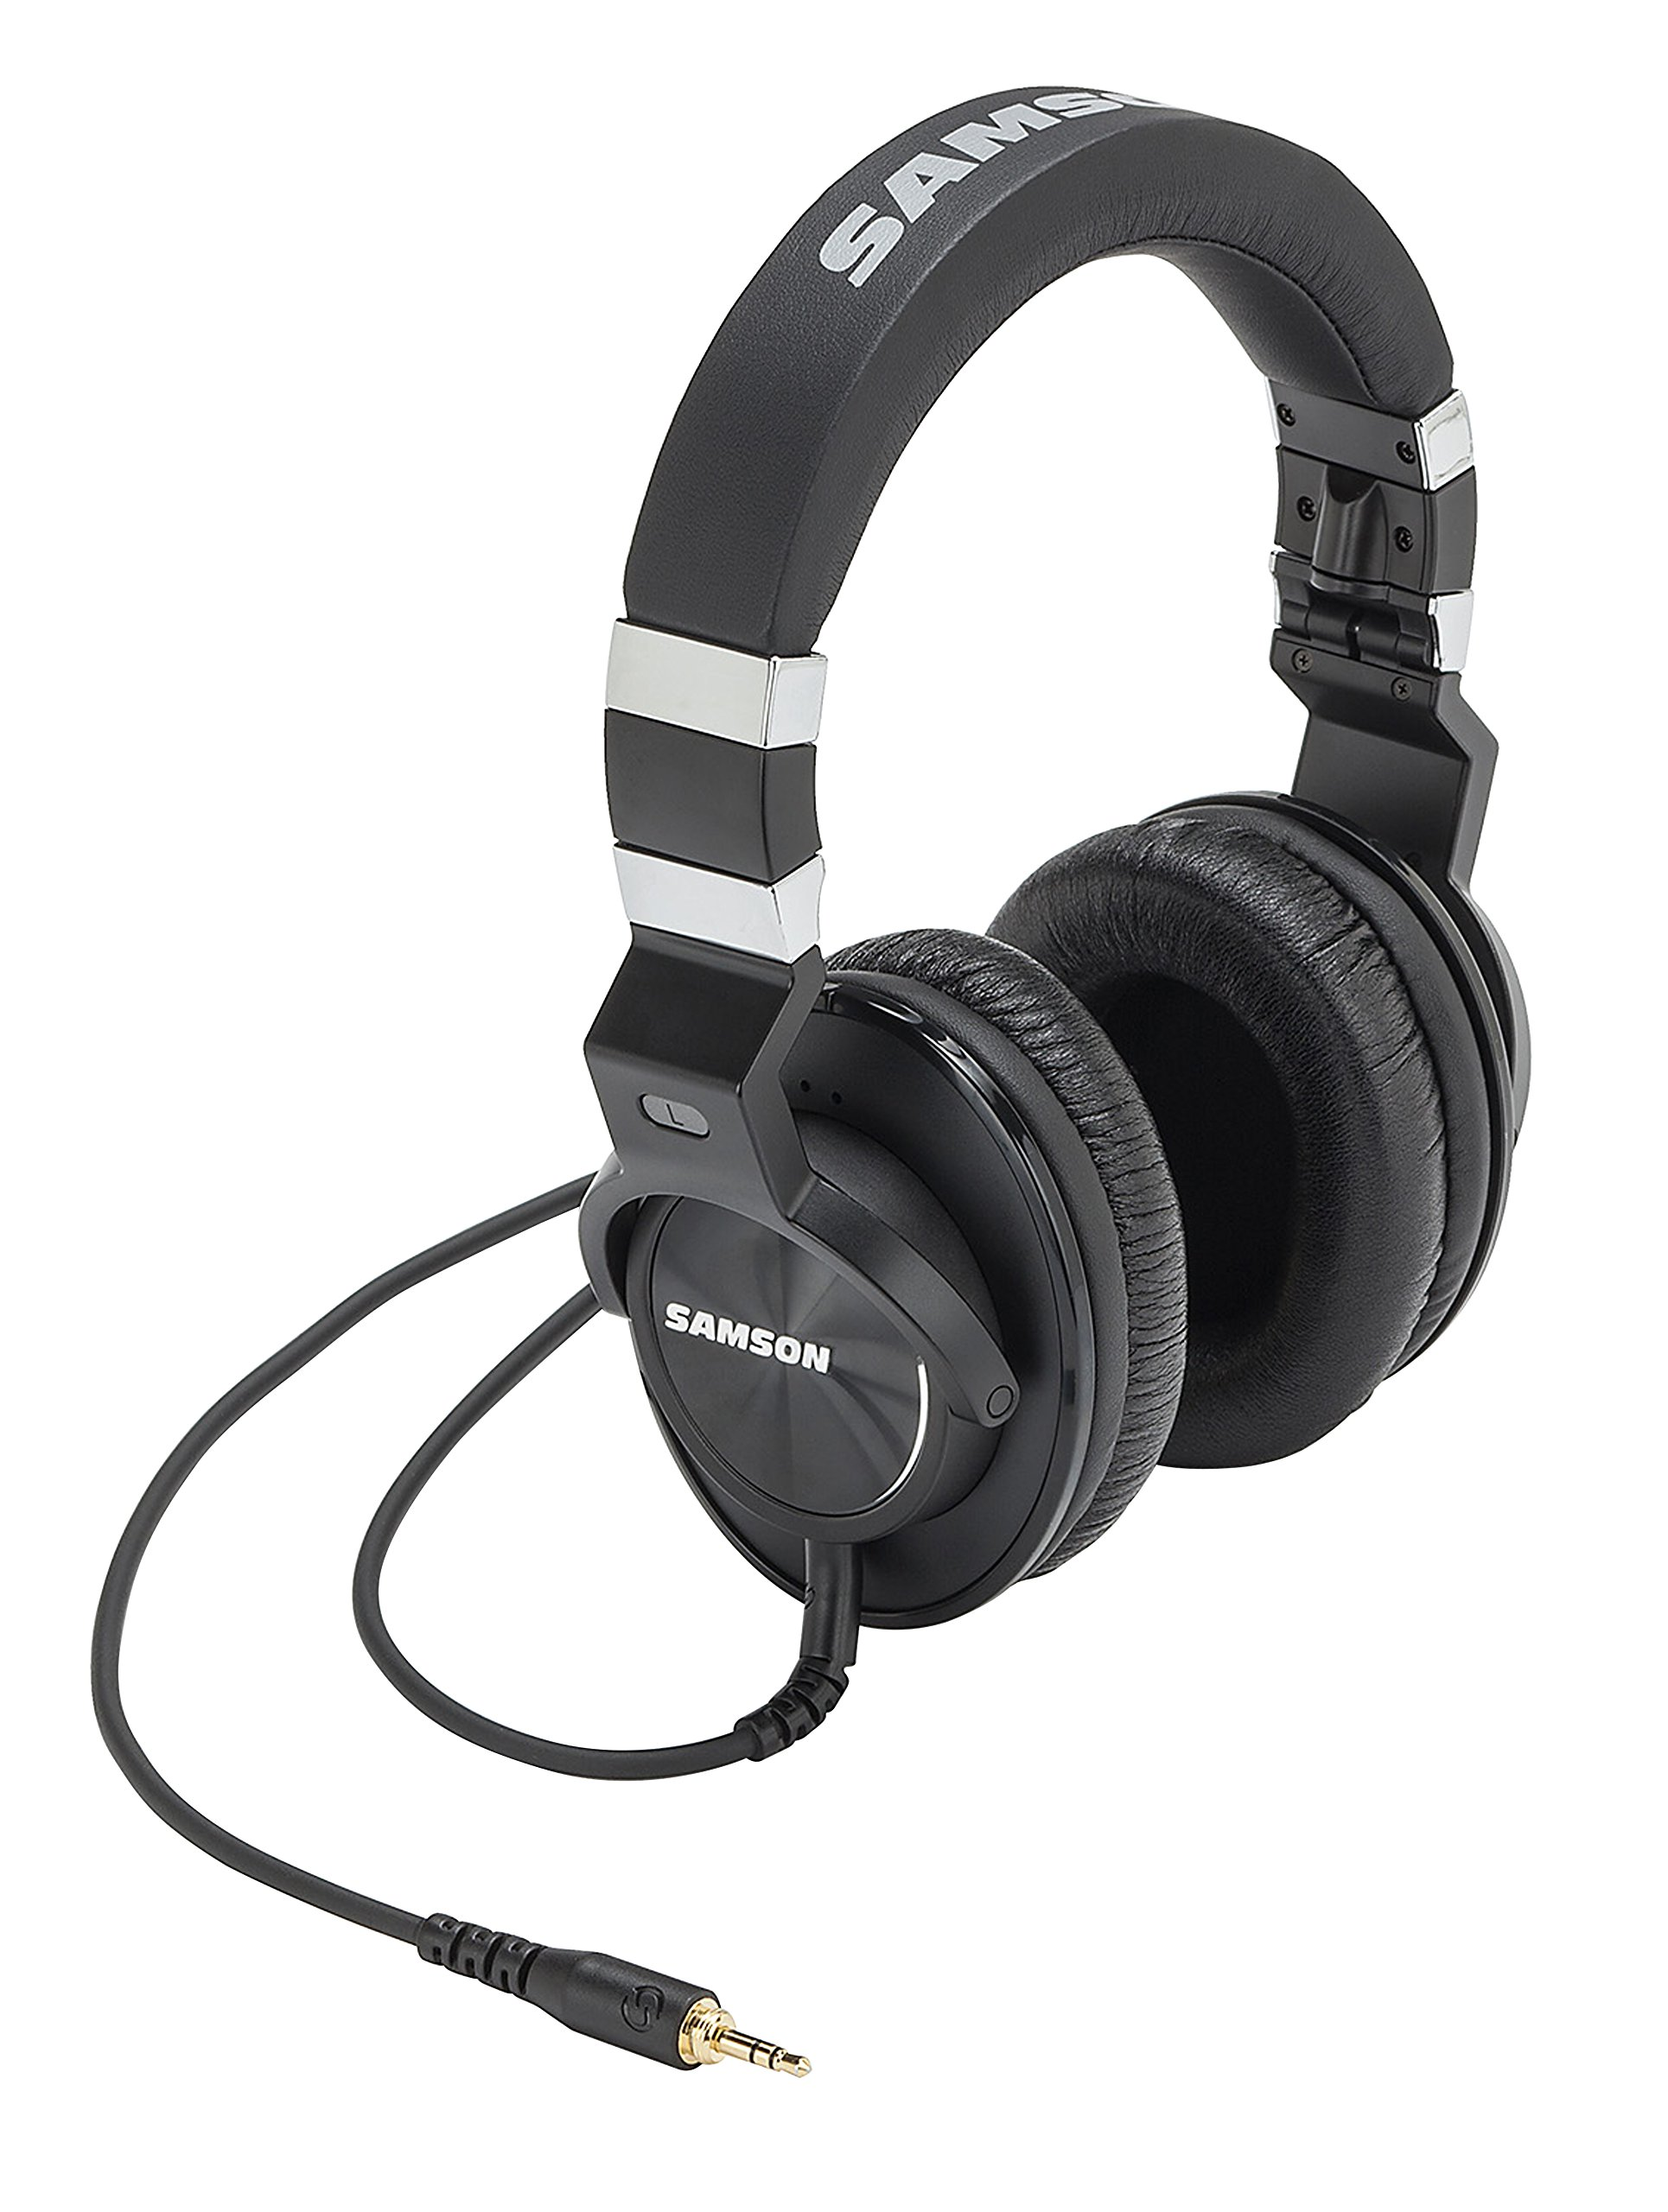 Samson Z55 Closed Back Over-Ear Professional Reference Headphones